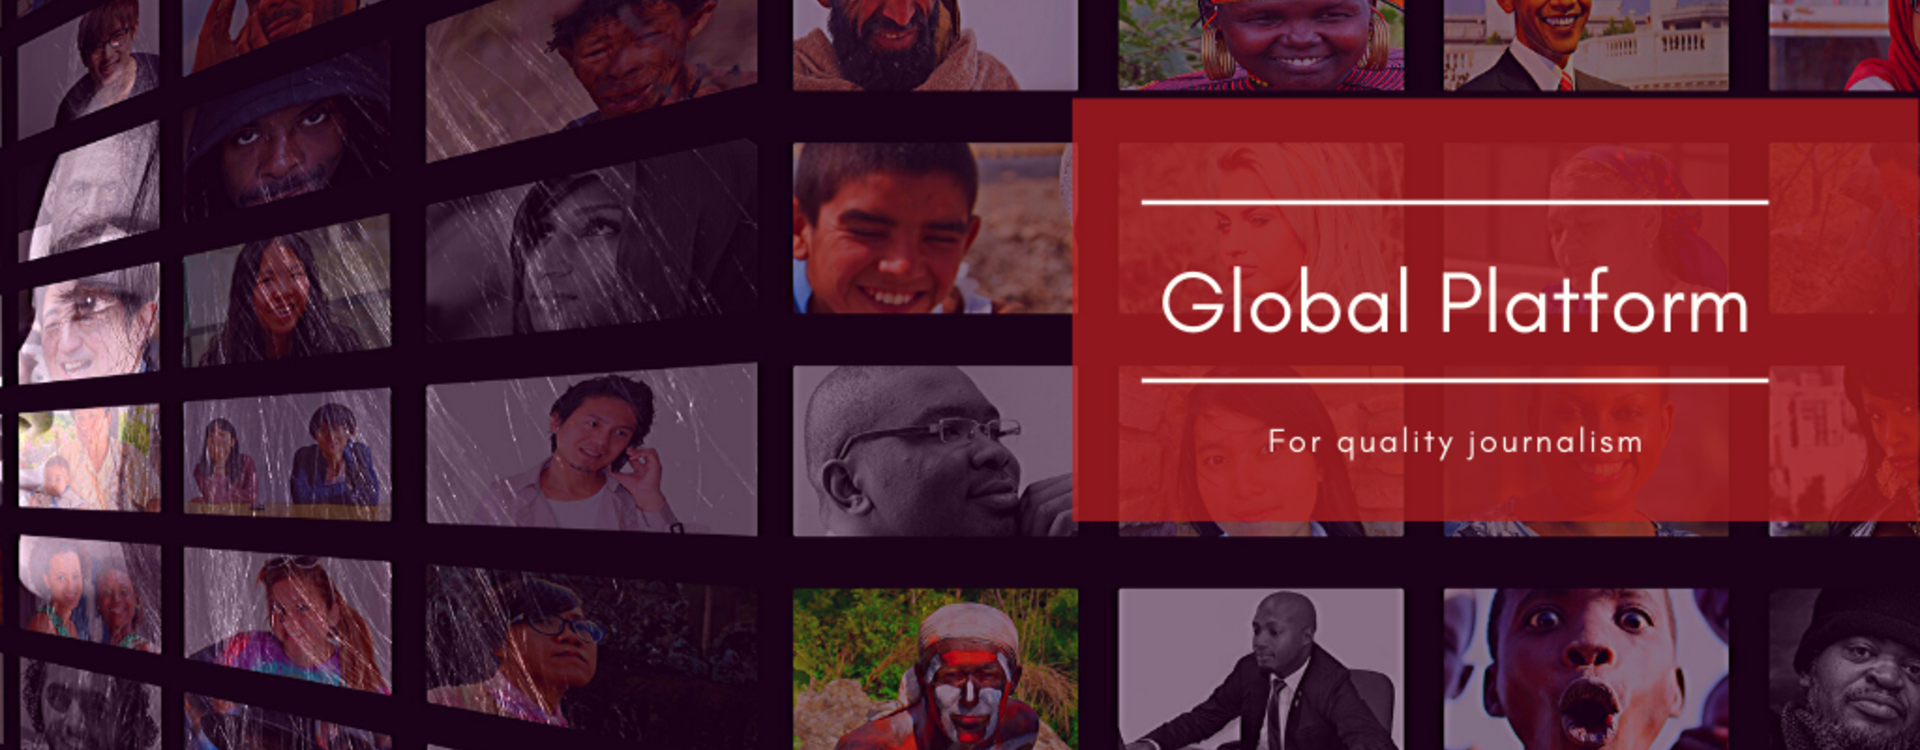 IFJ Global Platform for Quality Journalism